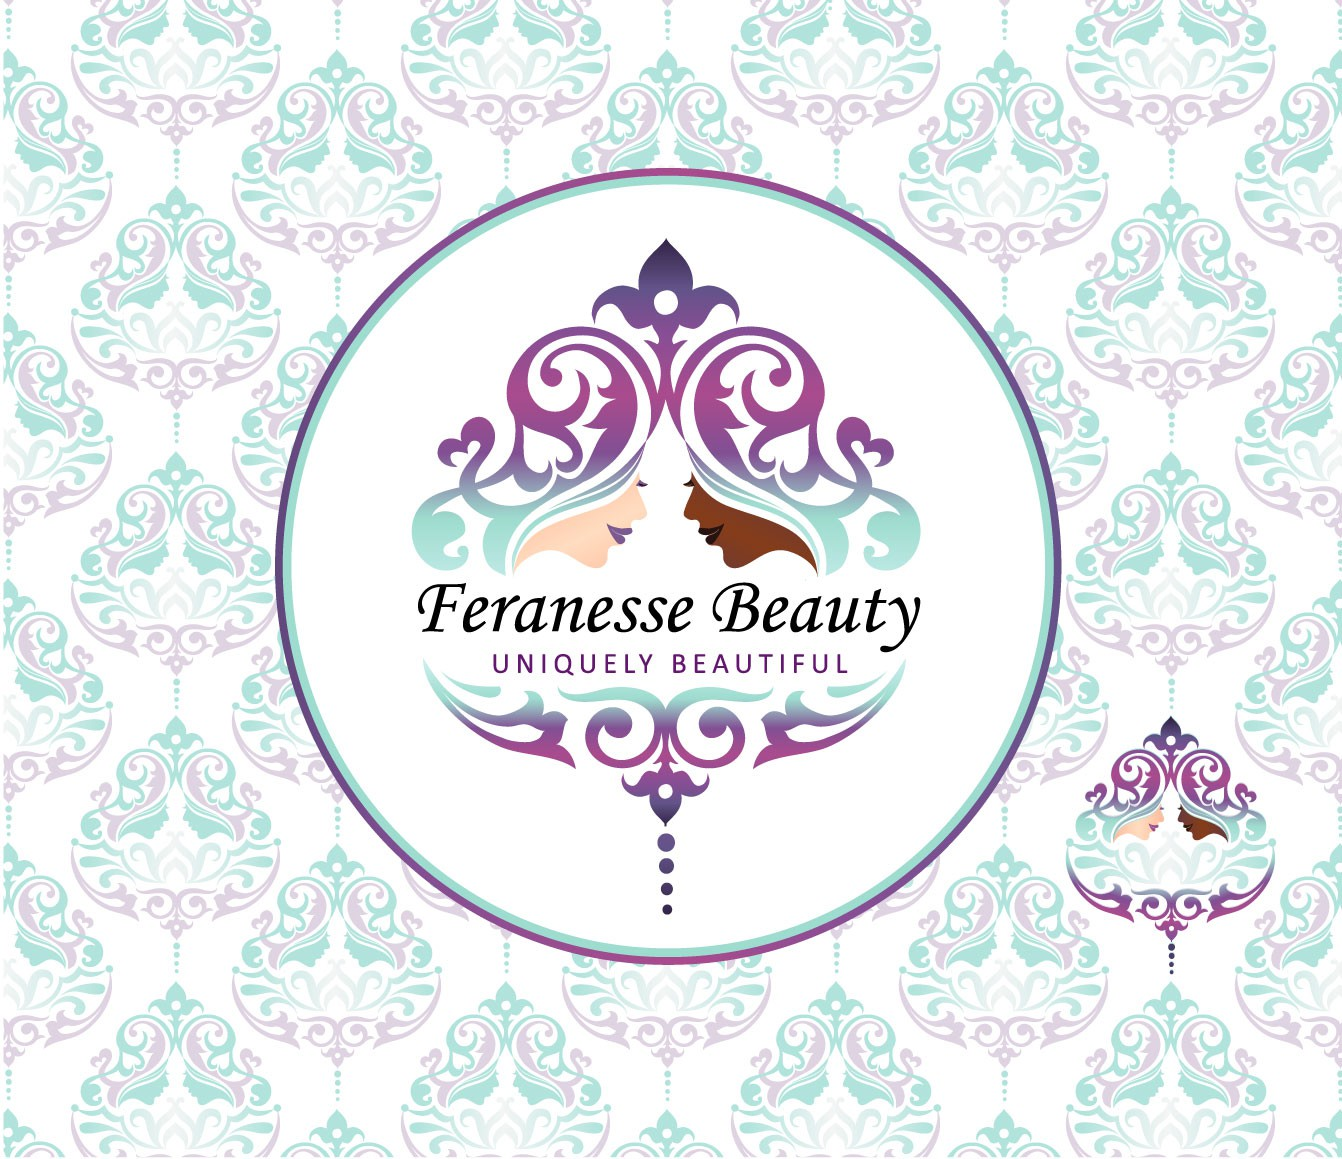 Create a luxourous makeup logo thats creative, sophisticated & speaks beauty for a makeup line.